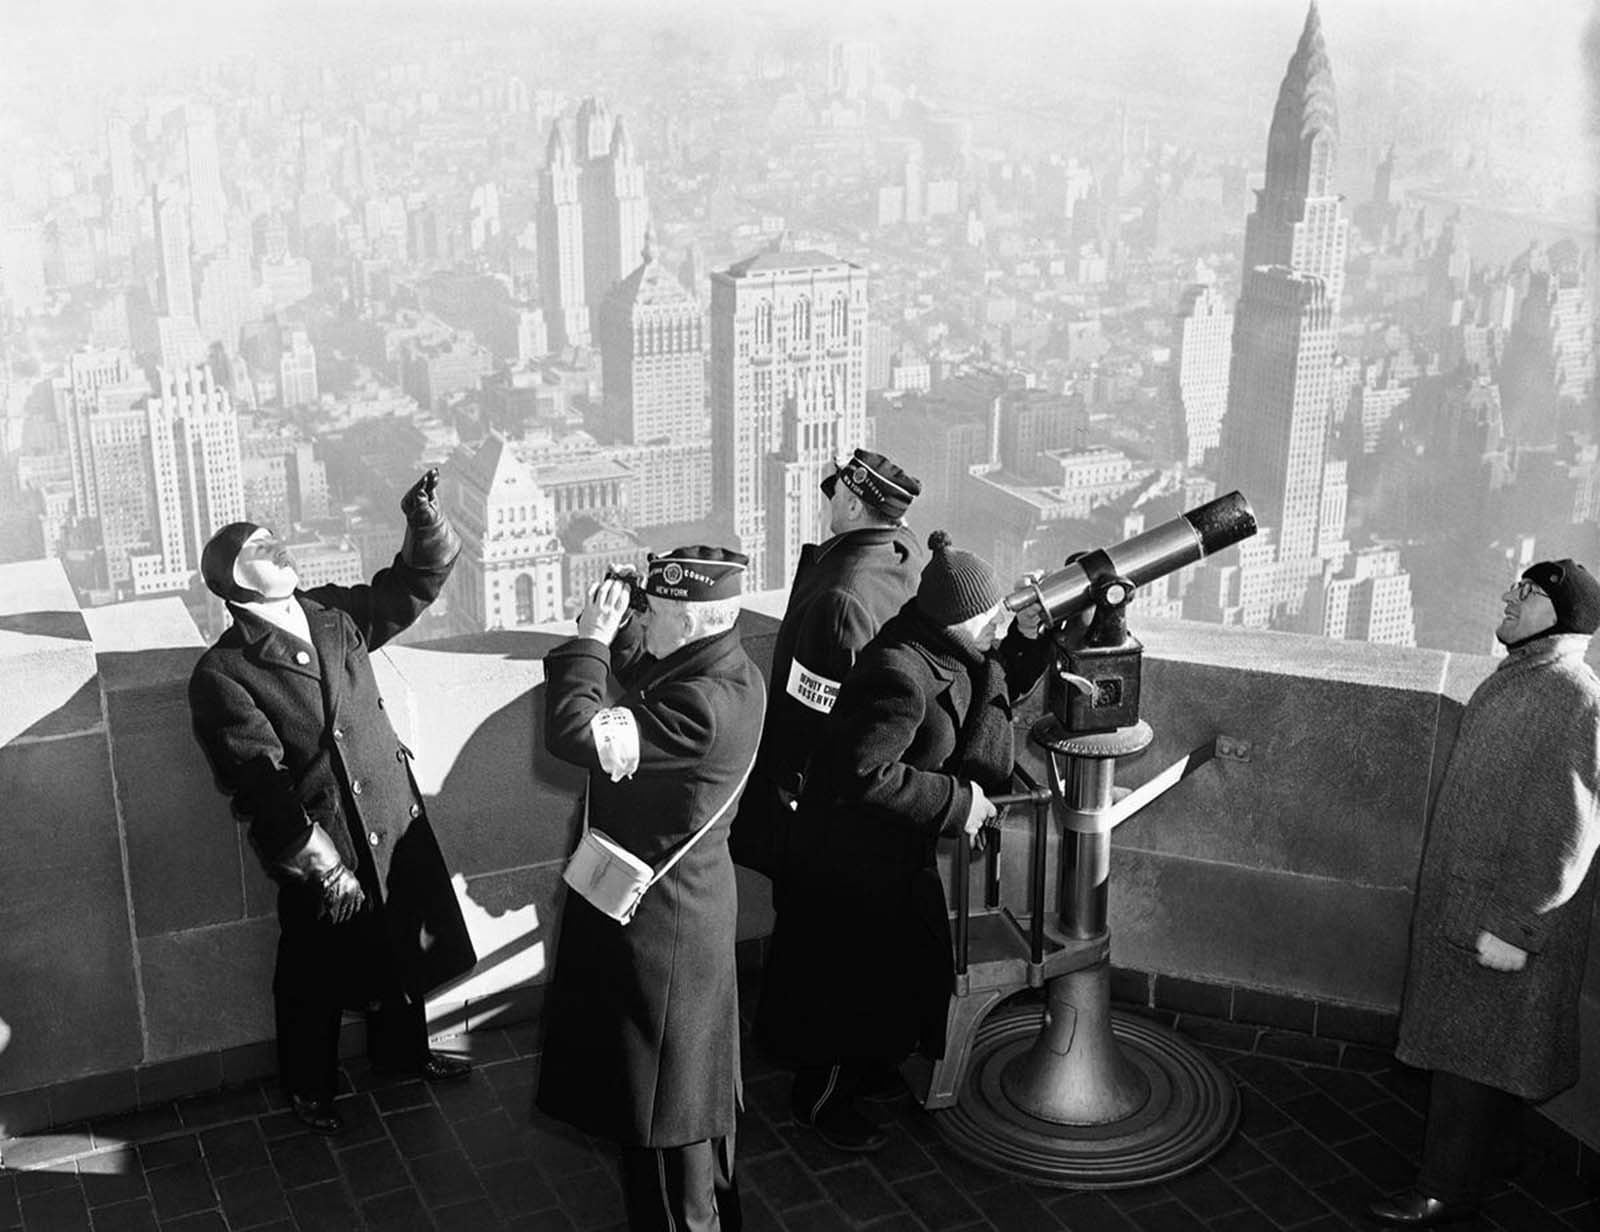 A crew of observers on the Empire State building, during an air defense test, on January 21, 1941 in New York City, conducted by the U.S. Army. Their job was to spot